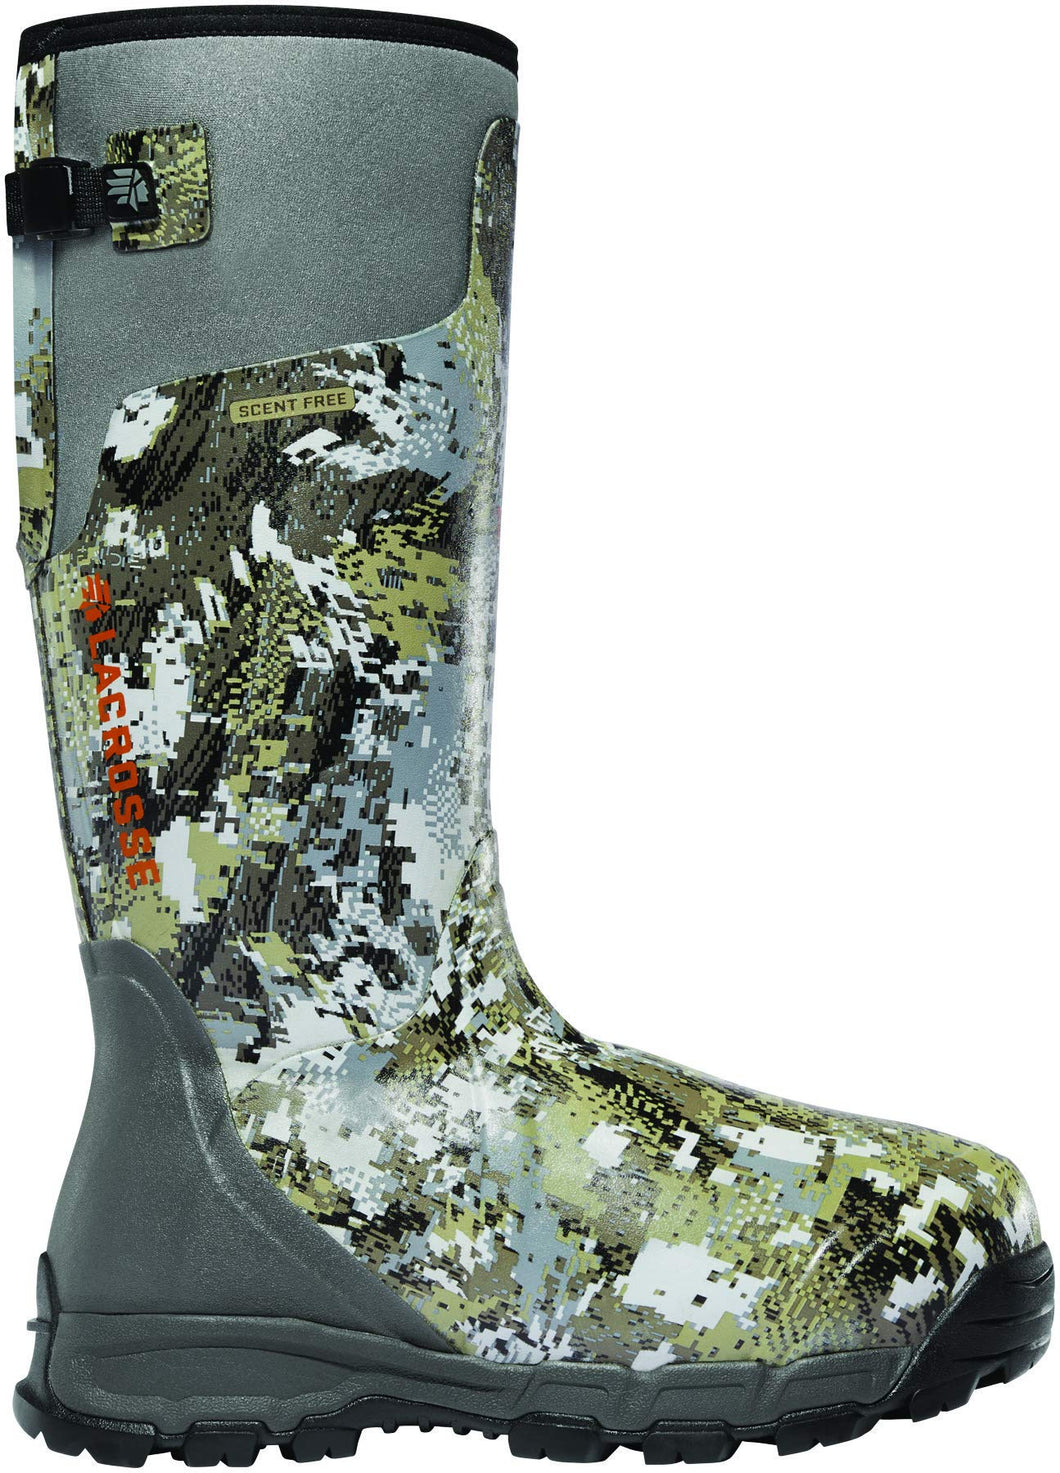 Lacrosse Men's Alphaburly Pro 18